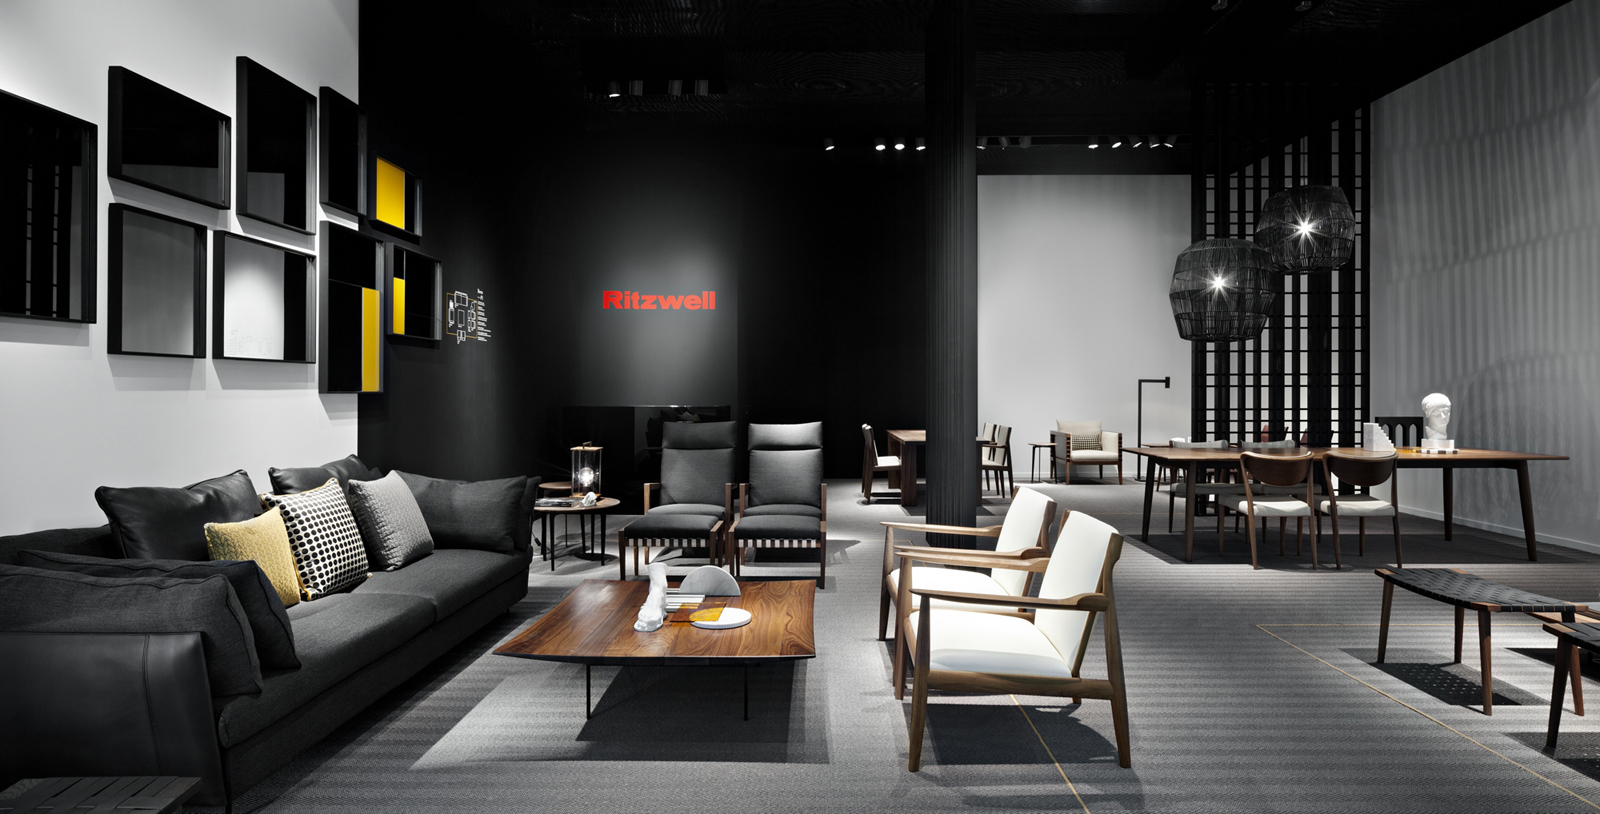 ritzwell salone del mobile milano 2015 silvia fanticelli. Black Bedroom Furniture Sets. Home Design Ideas